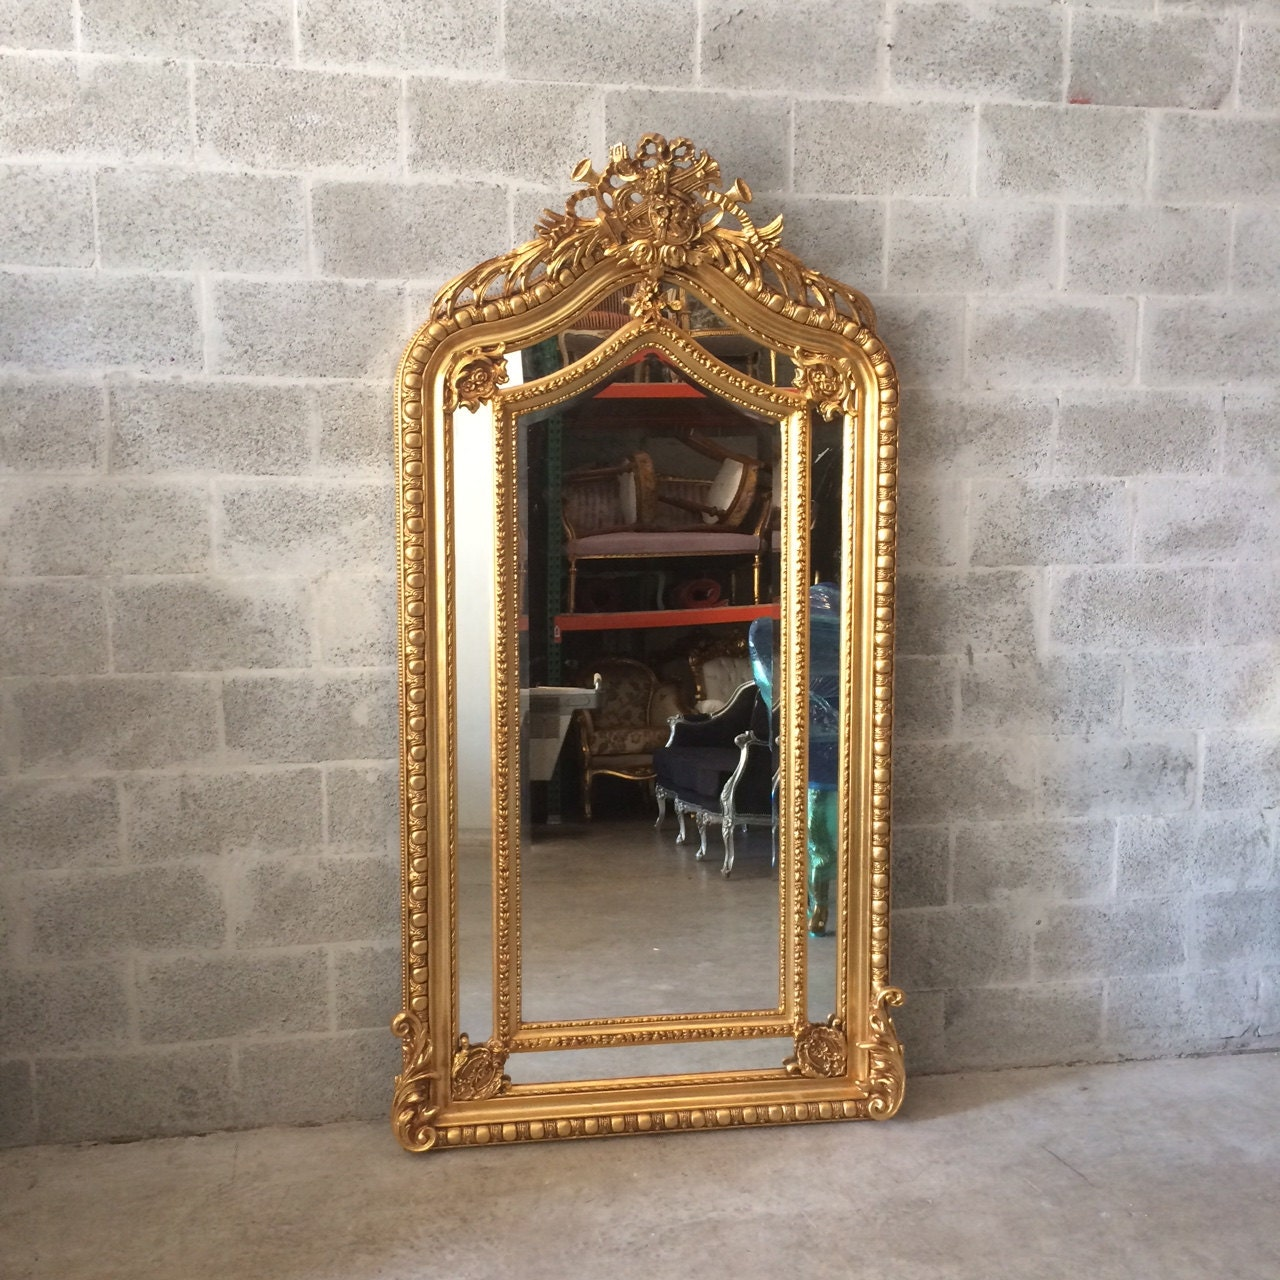 French Mirror Gold Antique Floor Mirror Carved French Furniture 82H ...